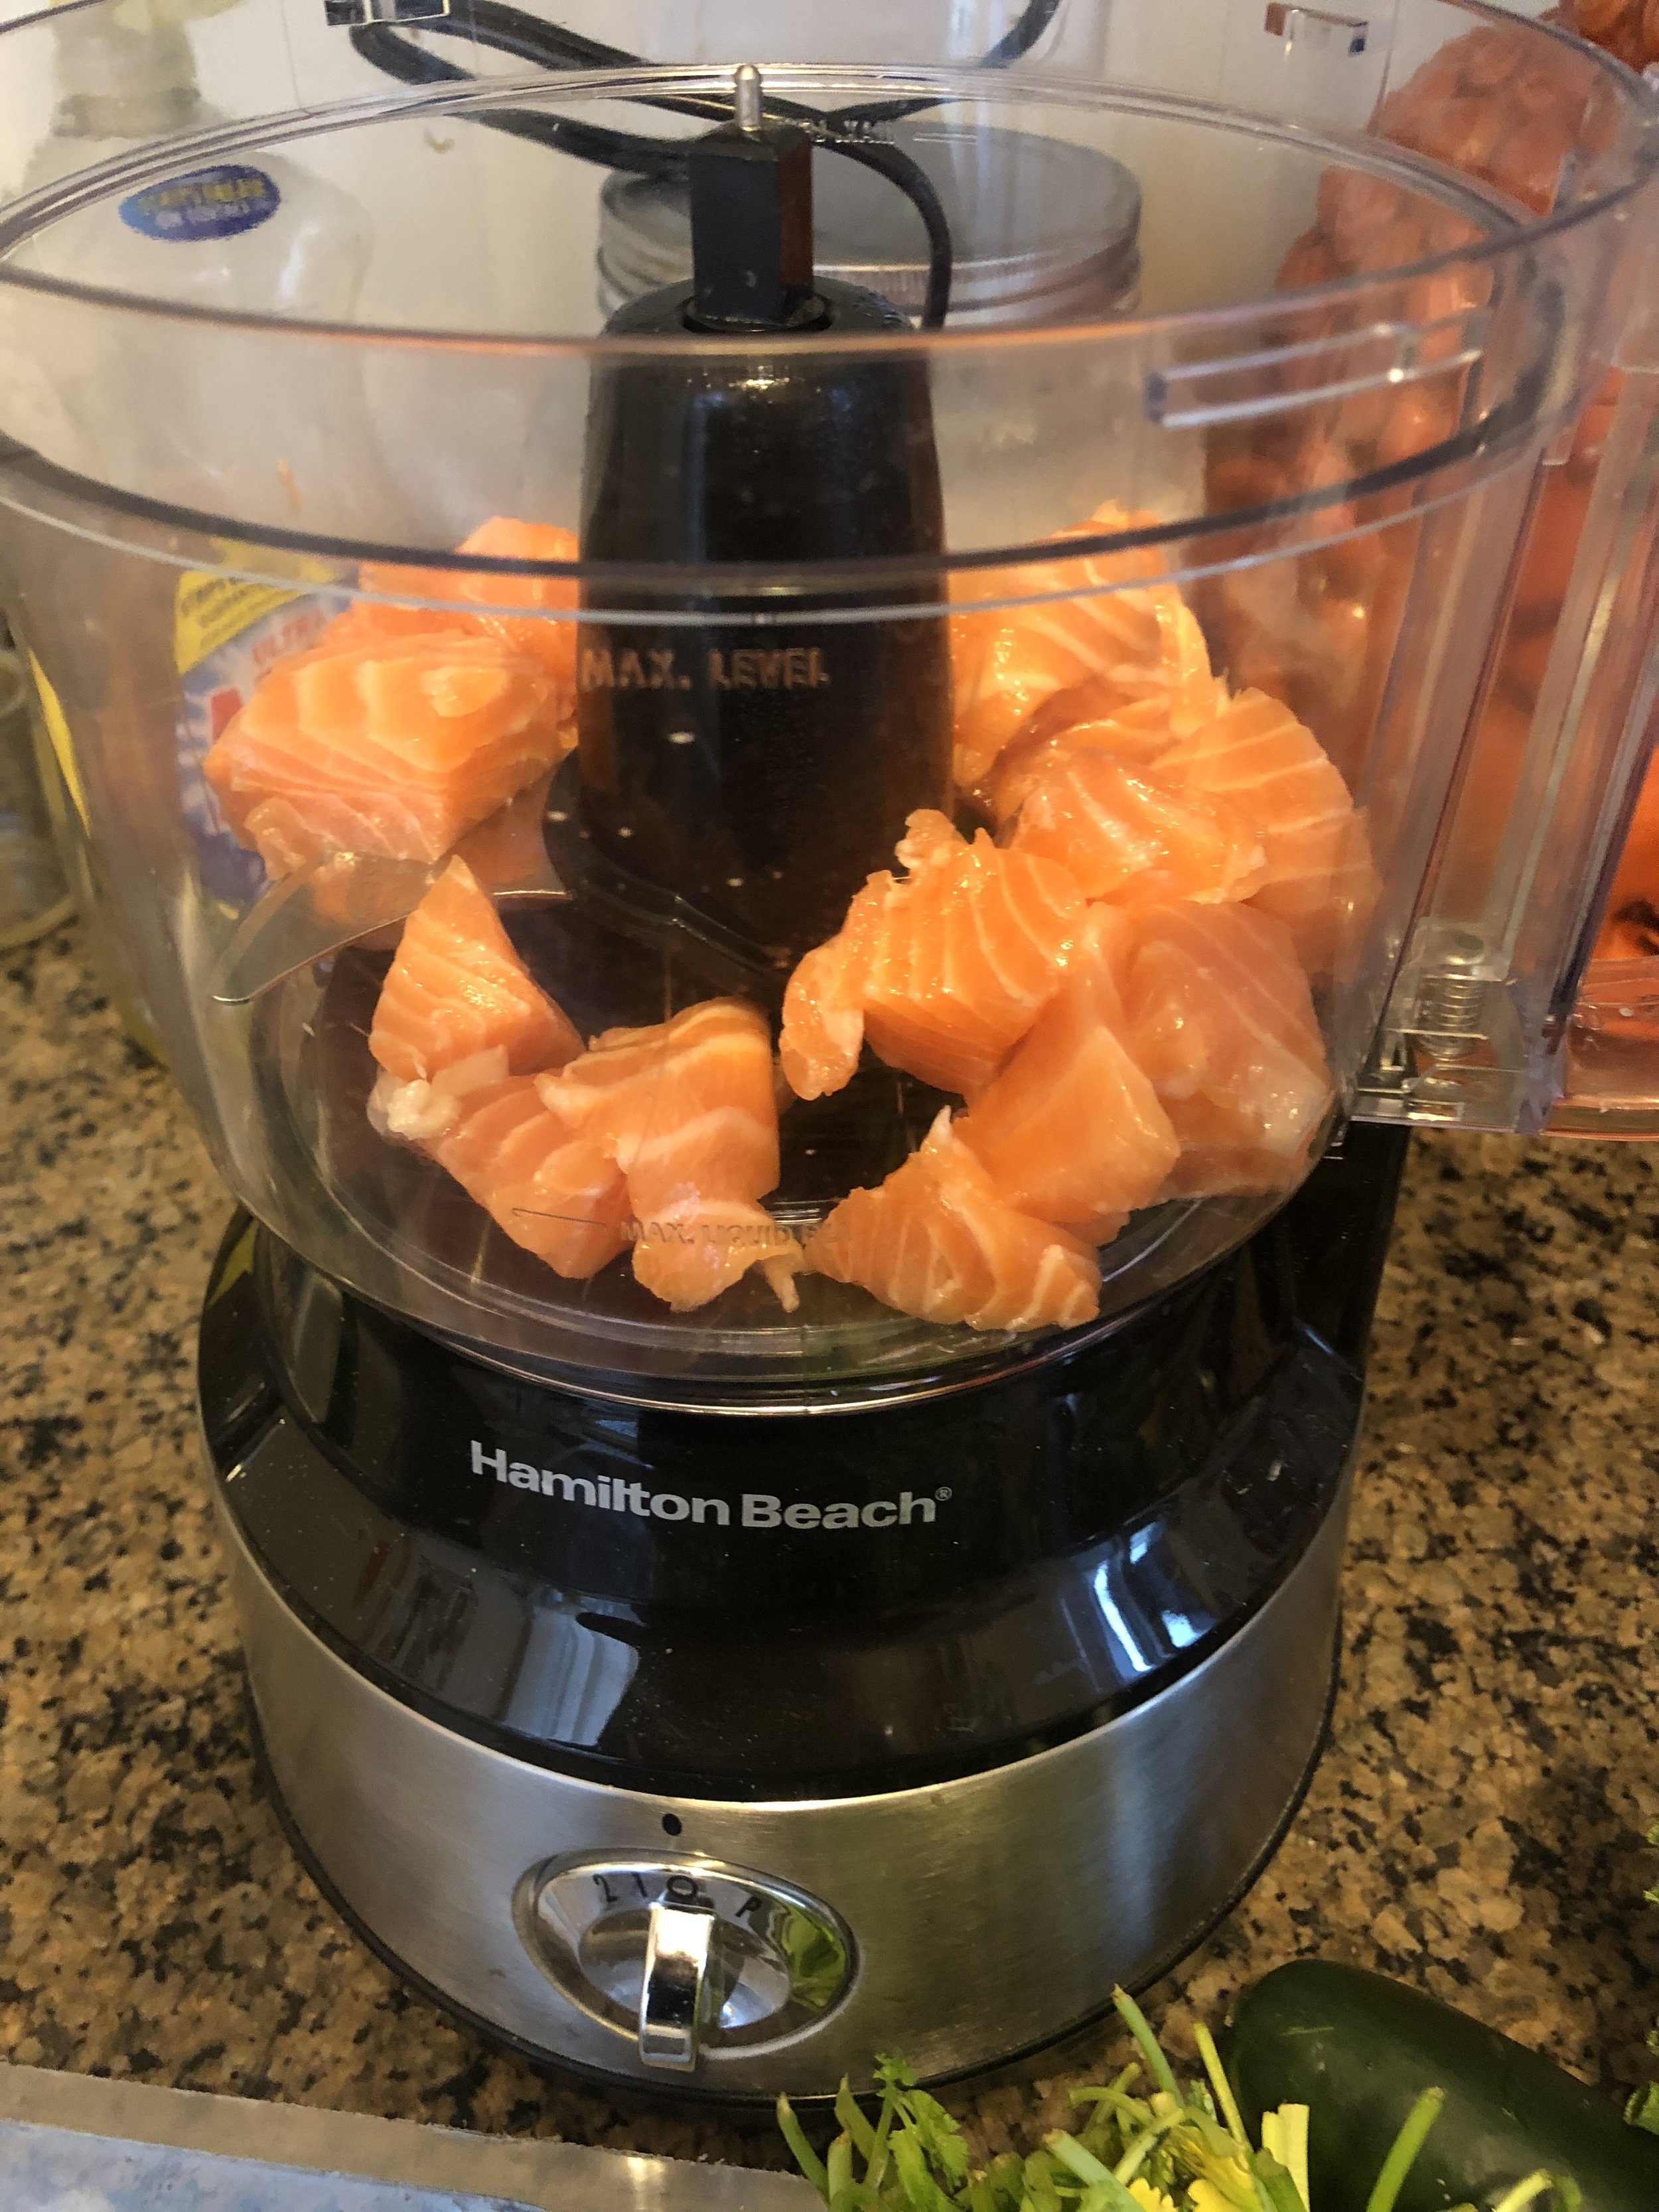 Cut the salmon into 2 inches cubes and place in your food processor. Process the salmon until it resembles a paste, but before it resembles a puree.